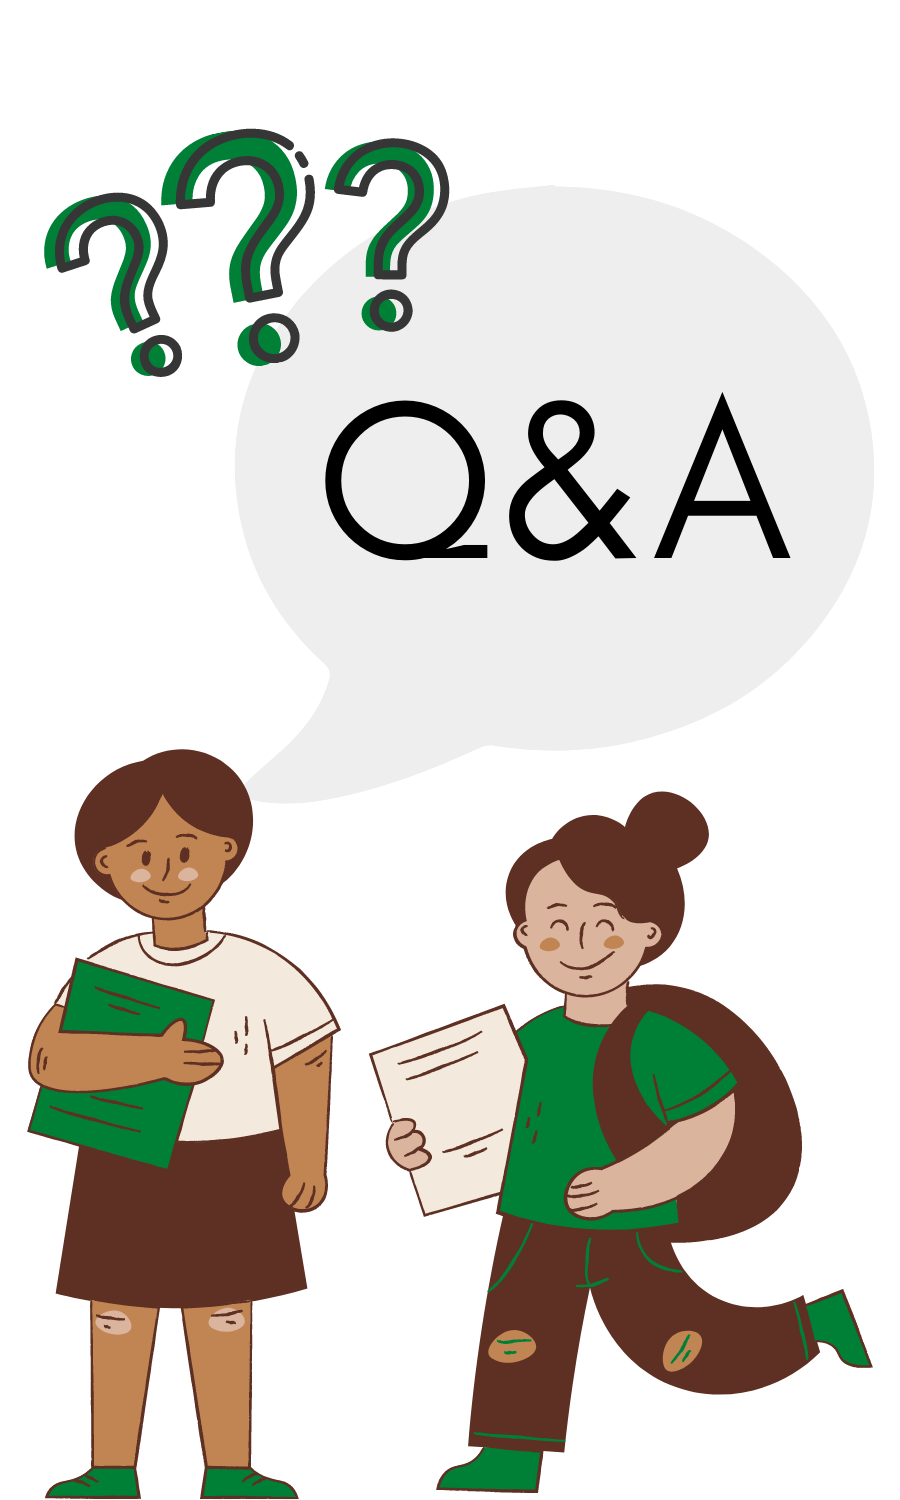 Questions and Answers Graphic